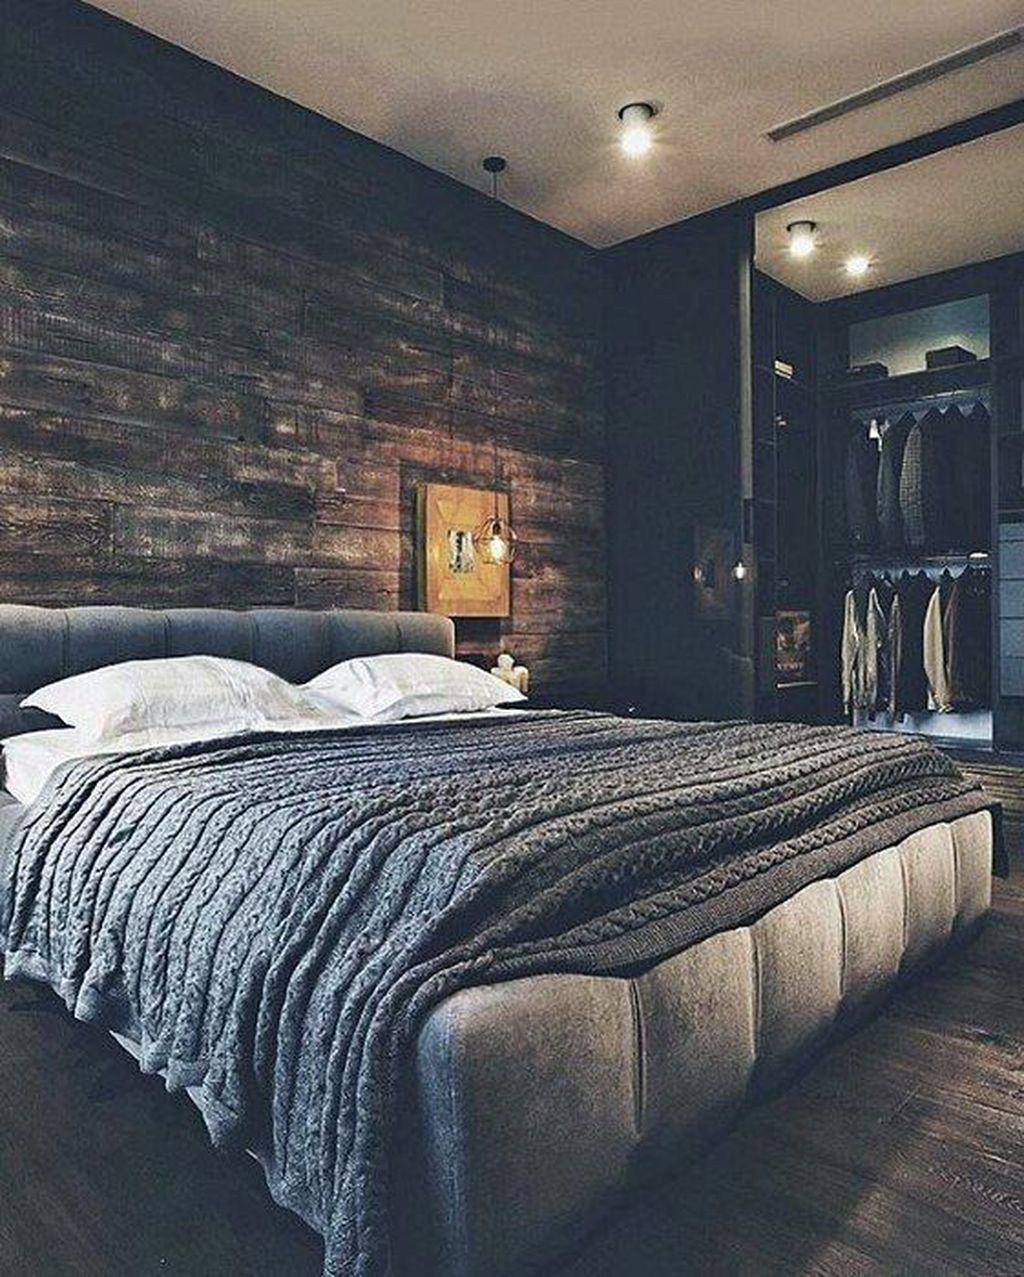 46 Grossartige Loft Schlafzimmer Design Ideen Men S Bedroom Design Modern Mens Bedroom Bachelor Pad Bedroom